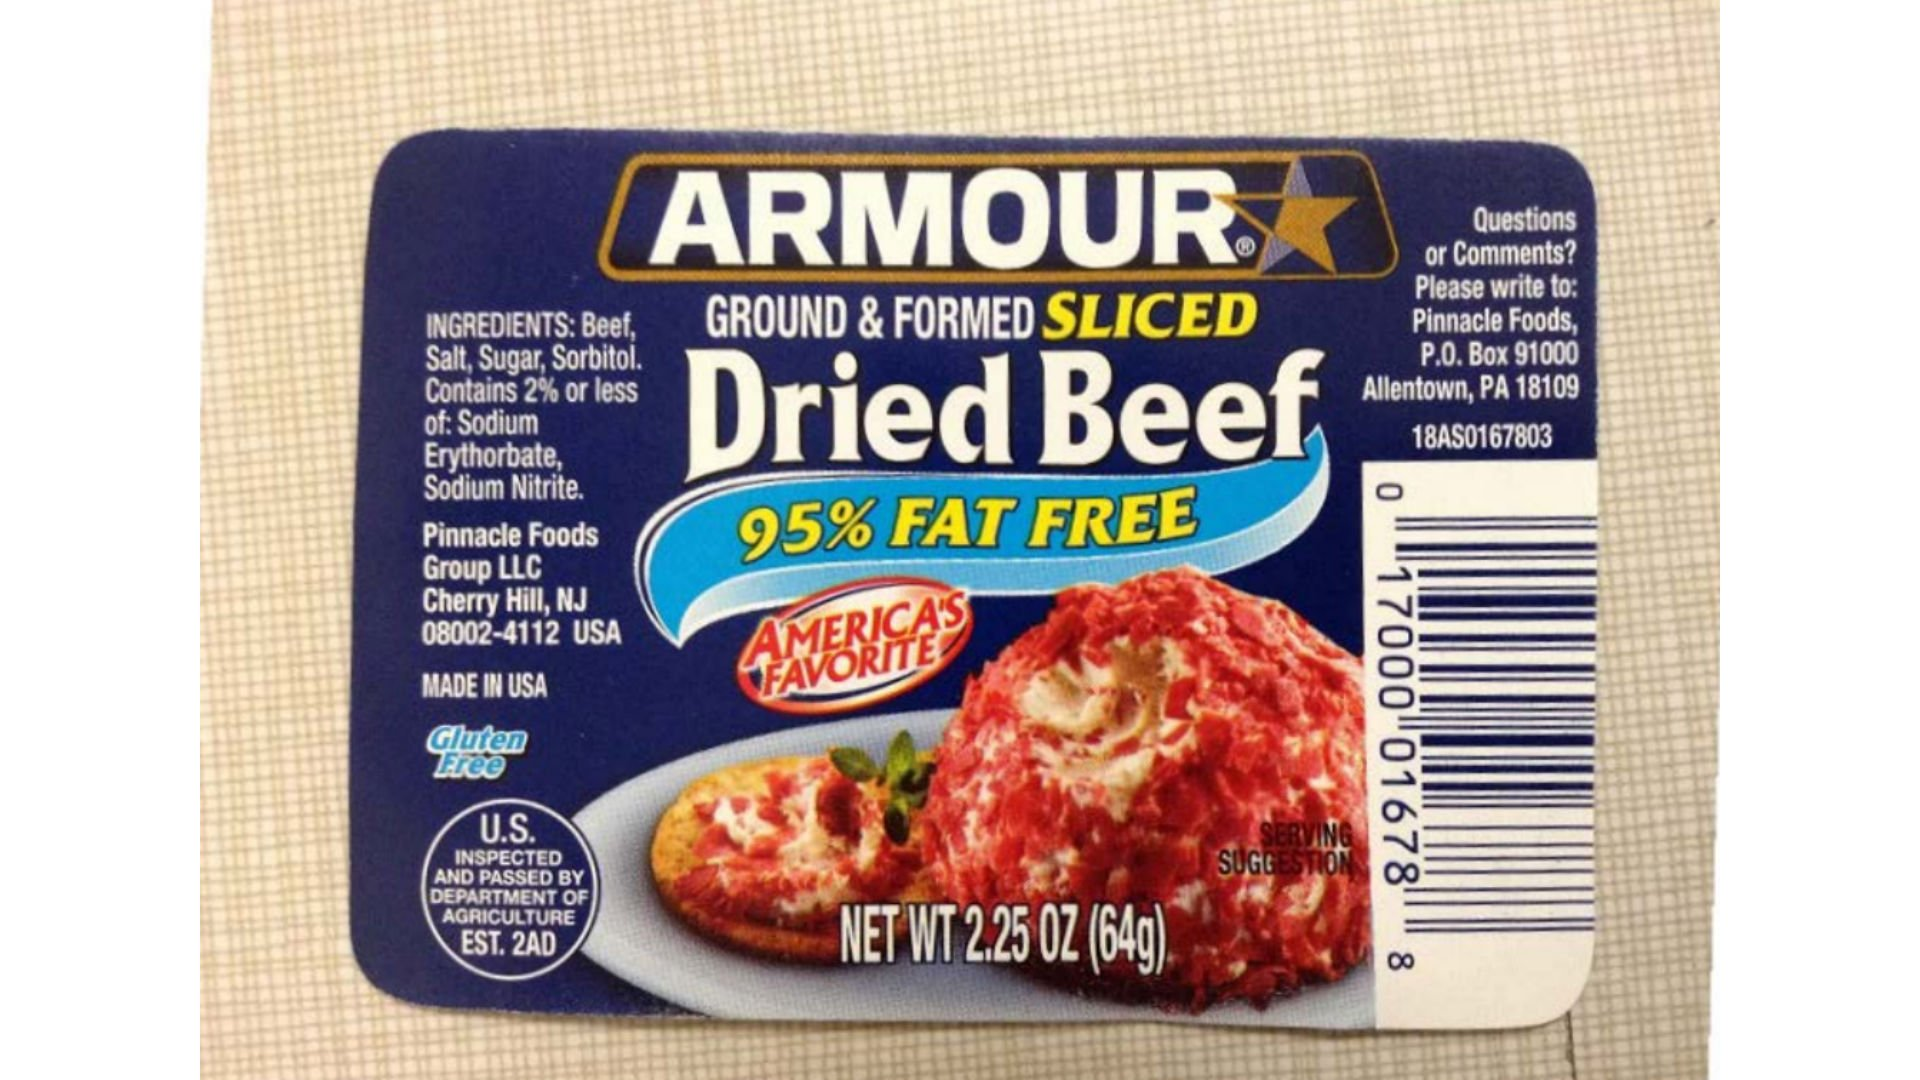 Based company recalls jars of dried beef